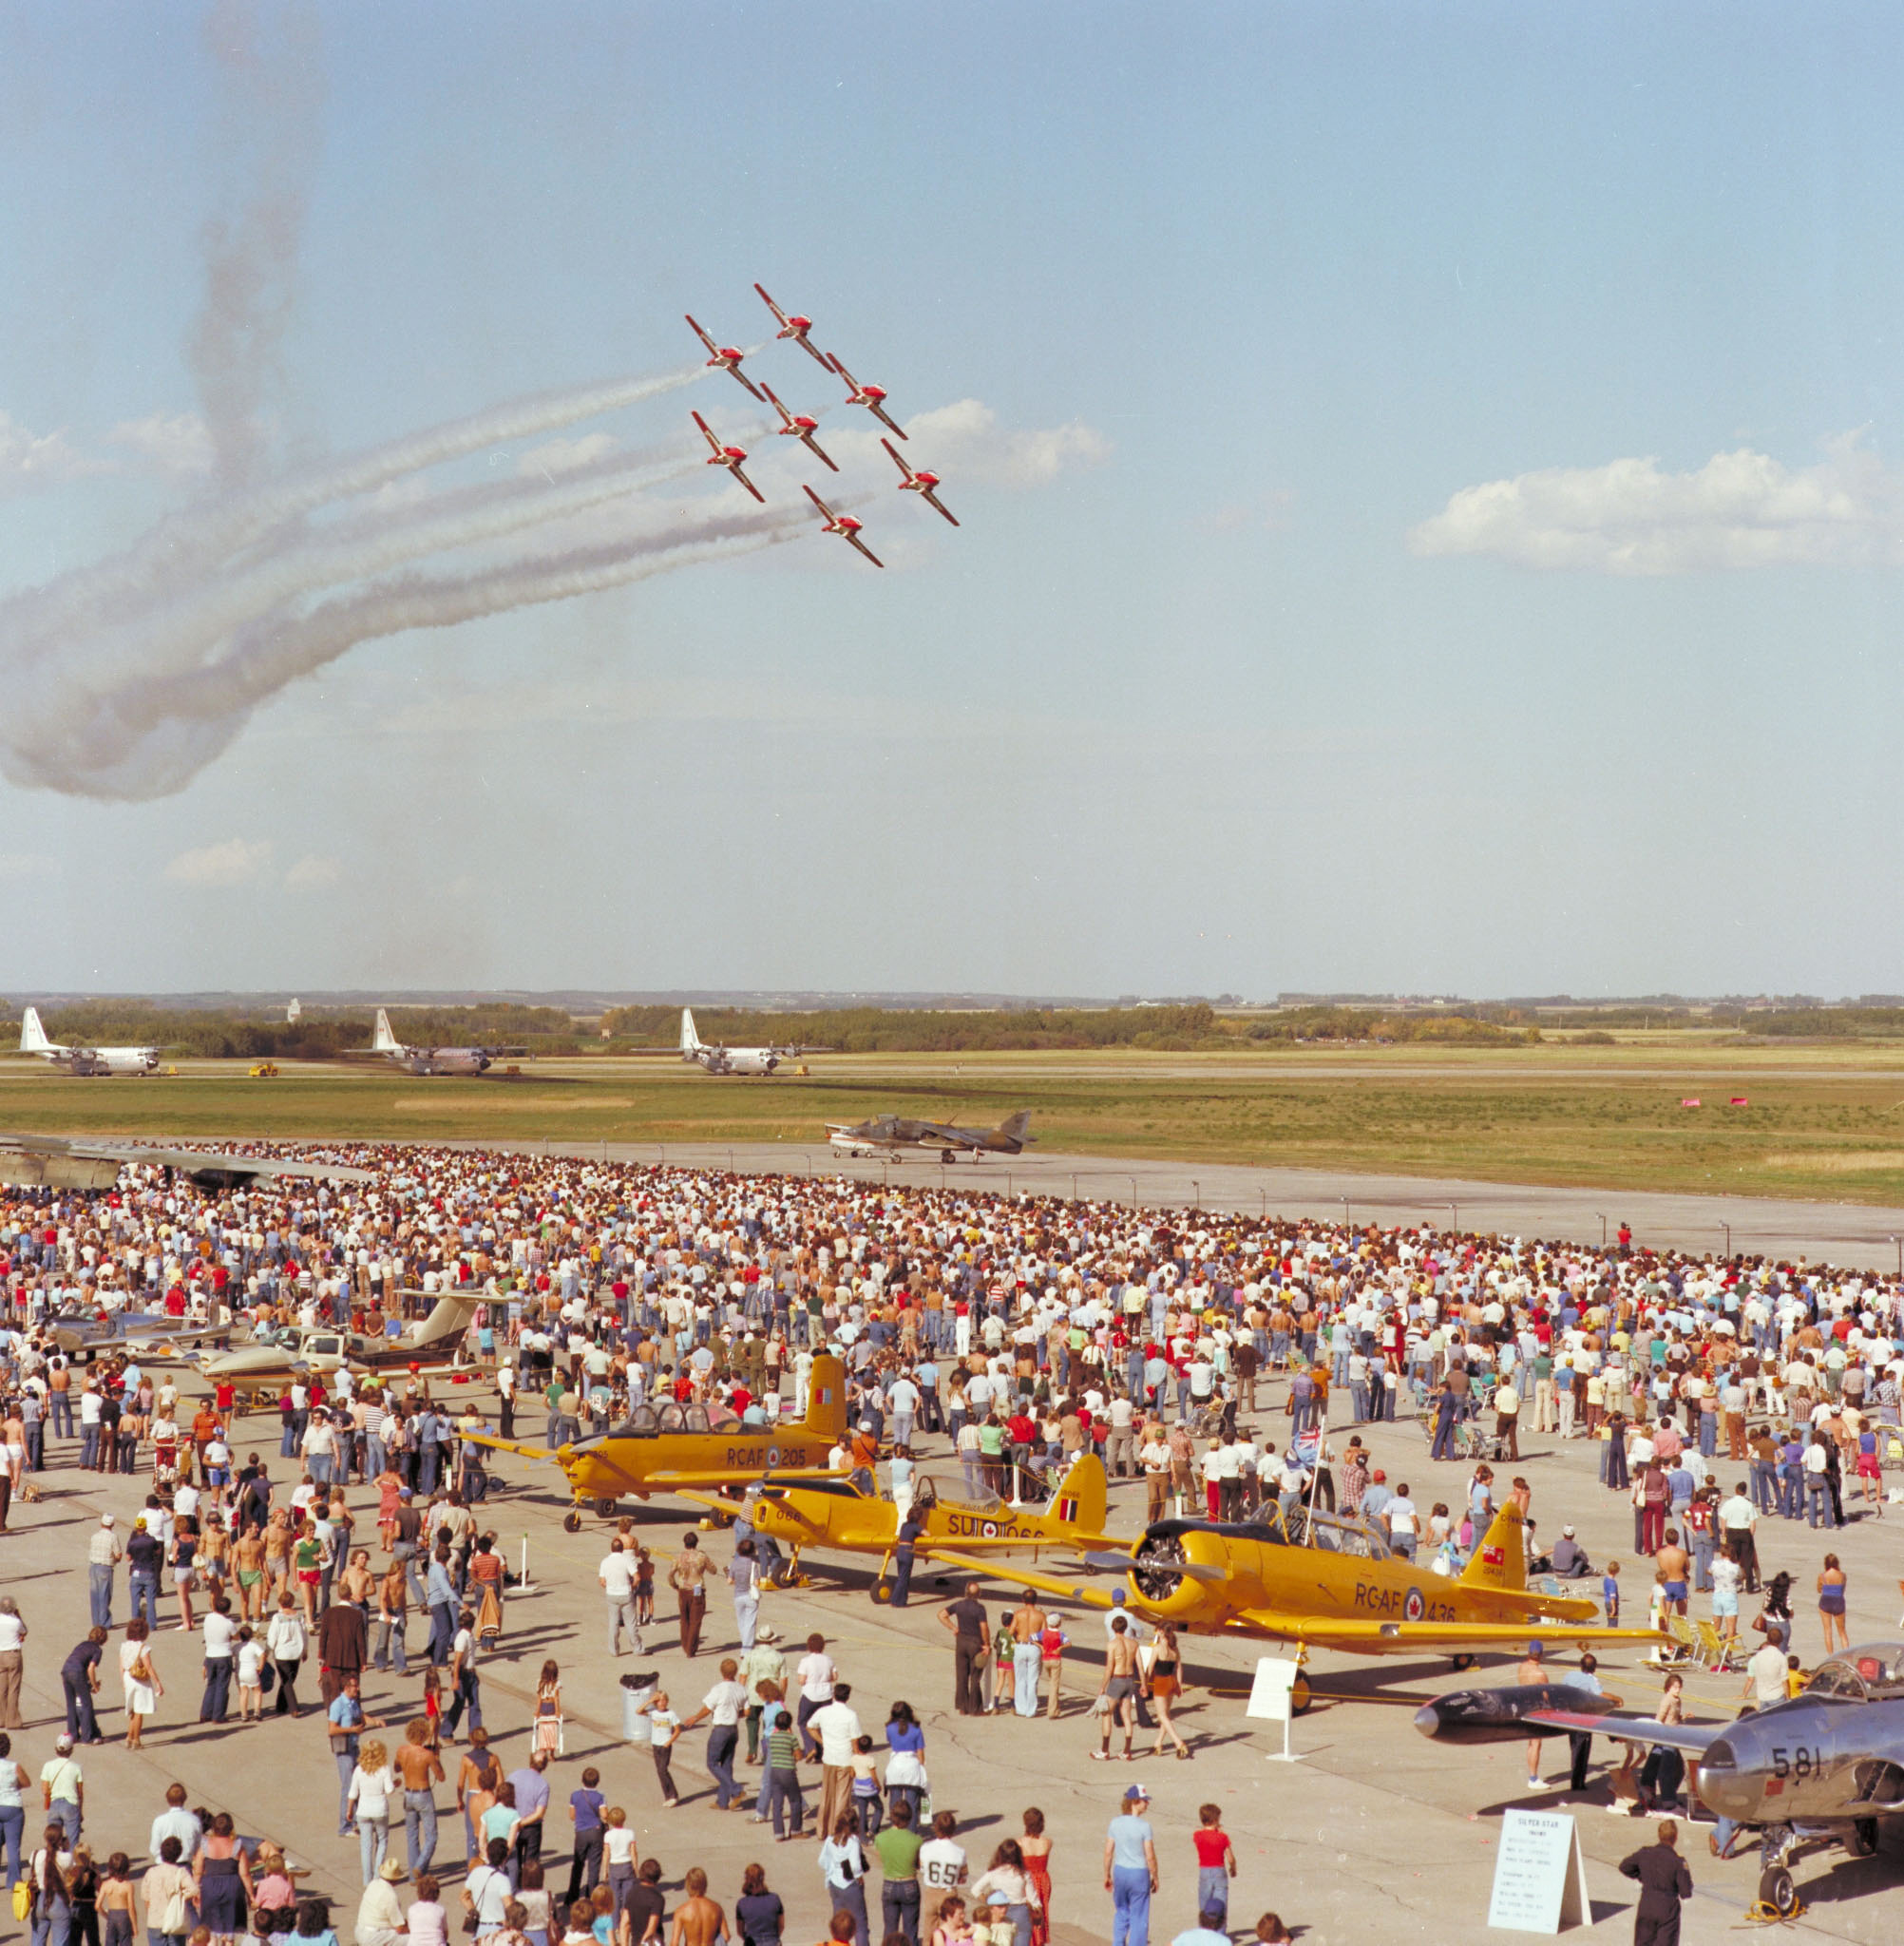 Le 6 septembre 1980, sept aéronefs des Snowbirds participent à un spectacle aérien à la BFC Edmonton. PHOTO : Archives du MDN, EMC80-542